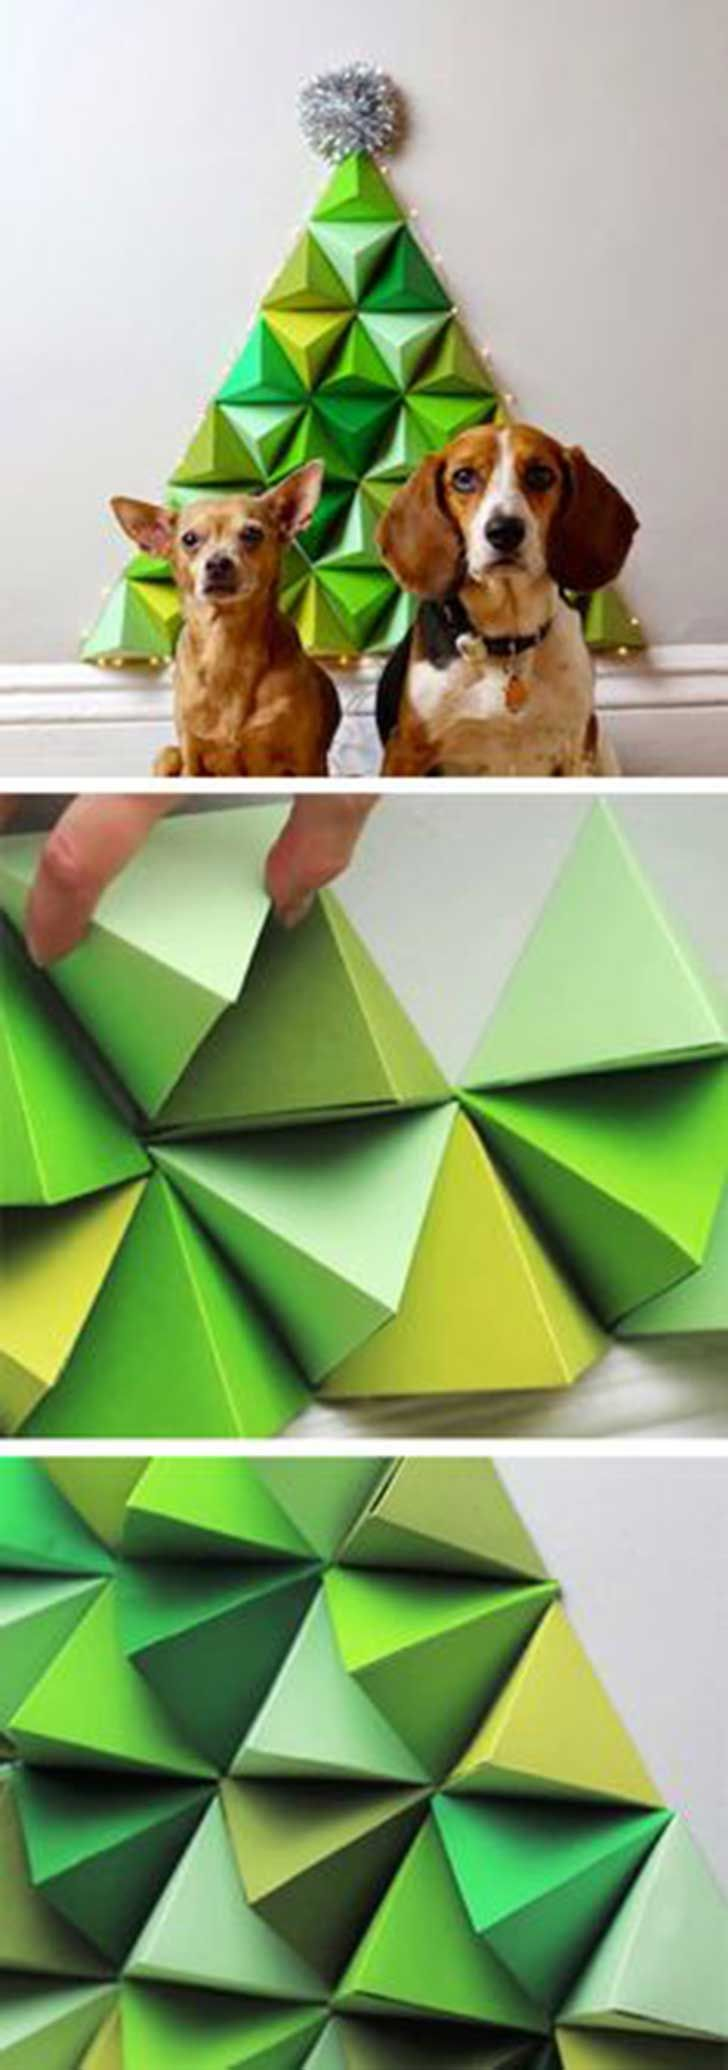 30 Insanely Beautiful Examples of DIY Paper Art That Will Enhance Your Decor homesthetics decor 12 9 encantadores diseos con papel